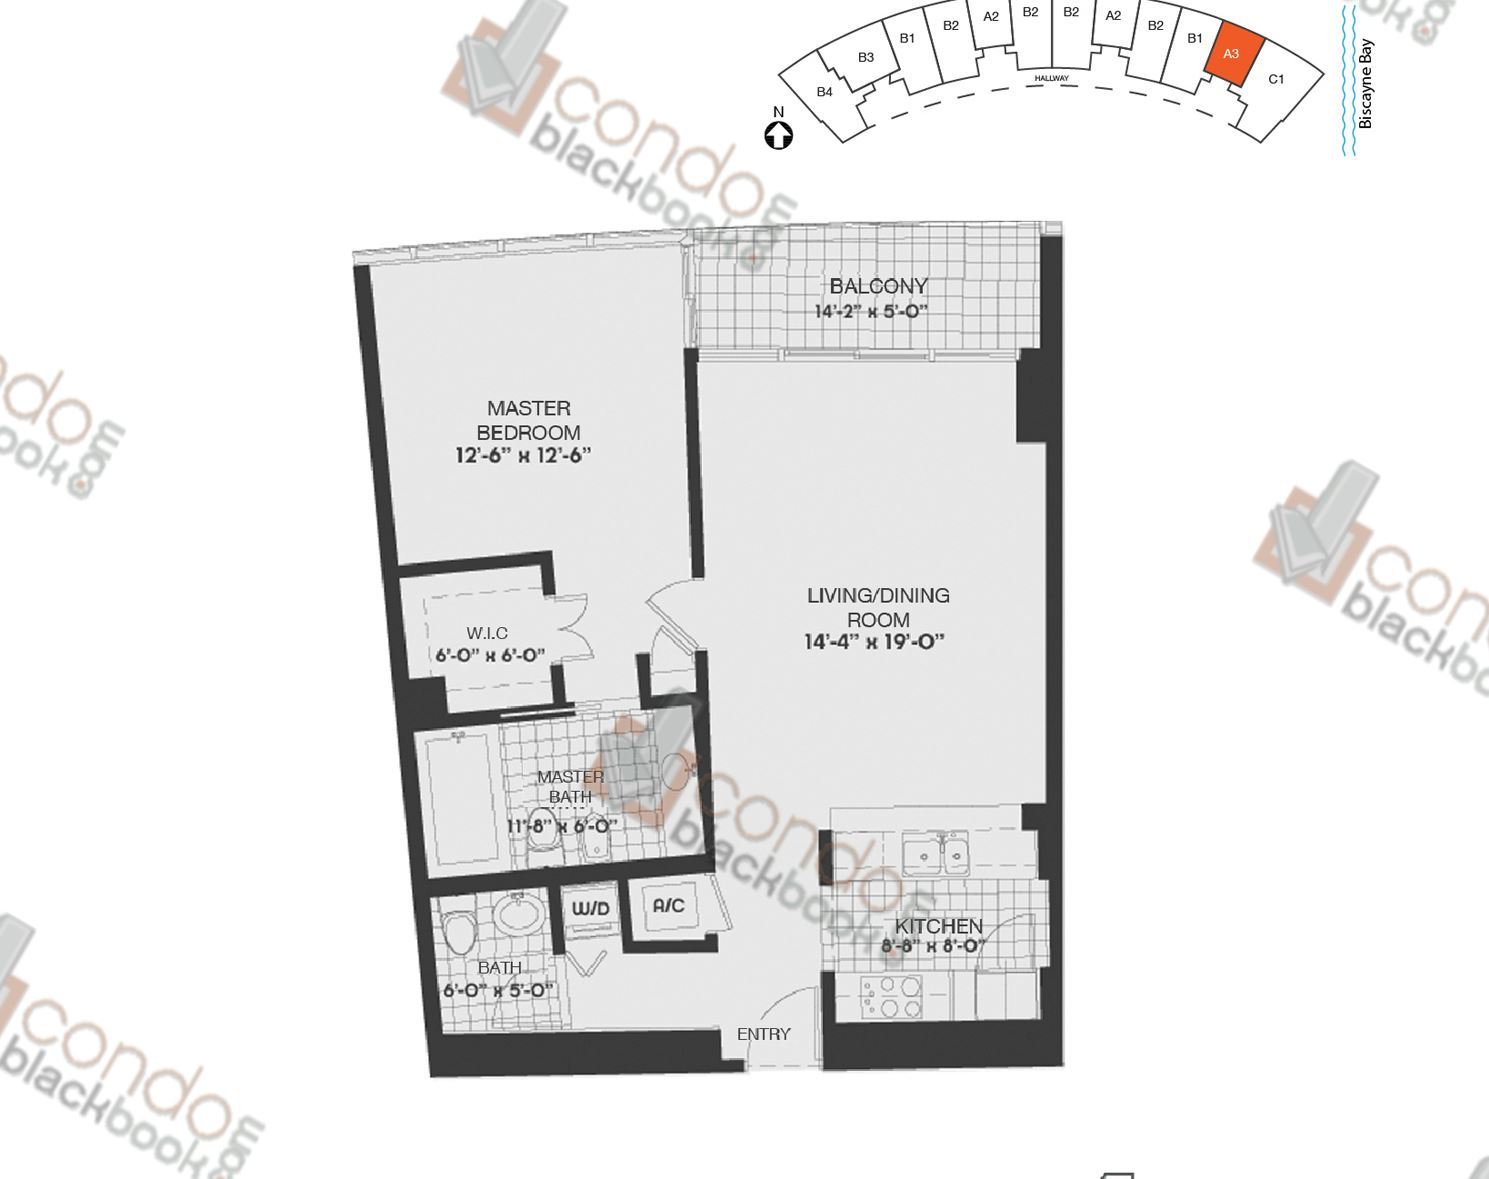 Floor plan for Blue Edgewater Miami, model A3, line 11, 1/1.5 bedrooms, 883 sq ft